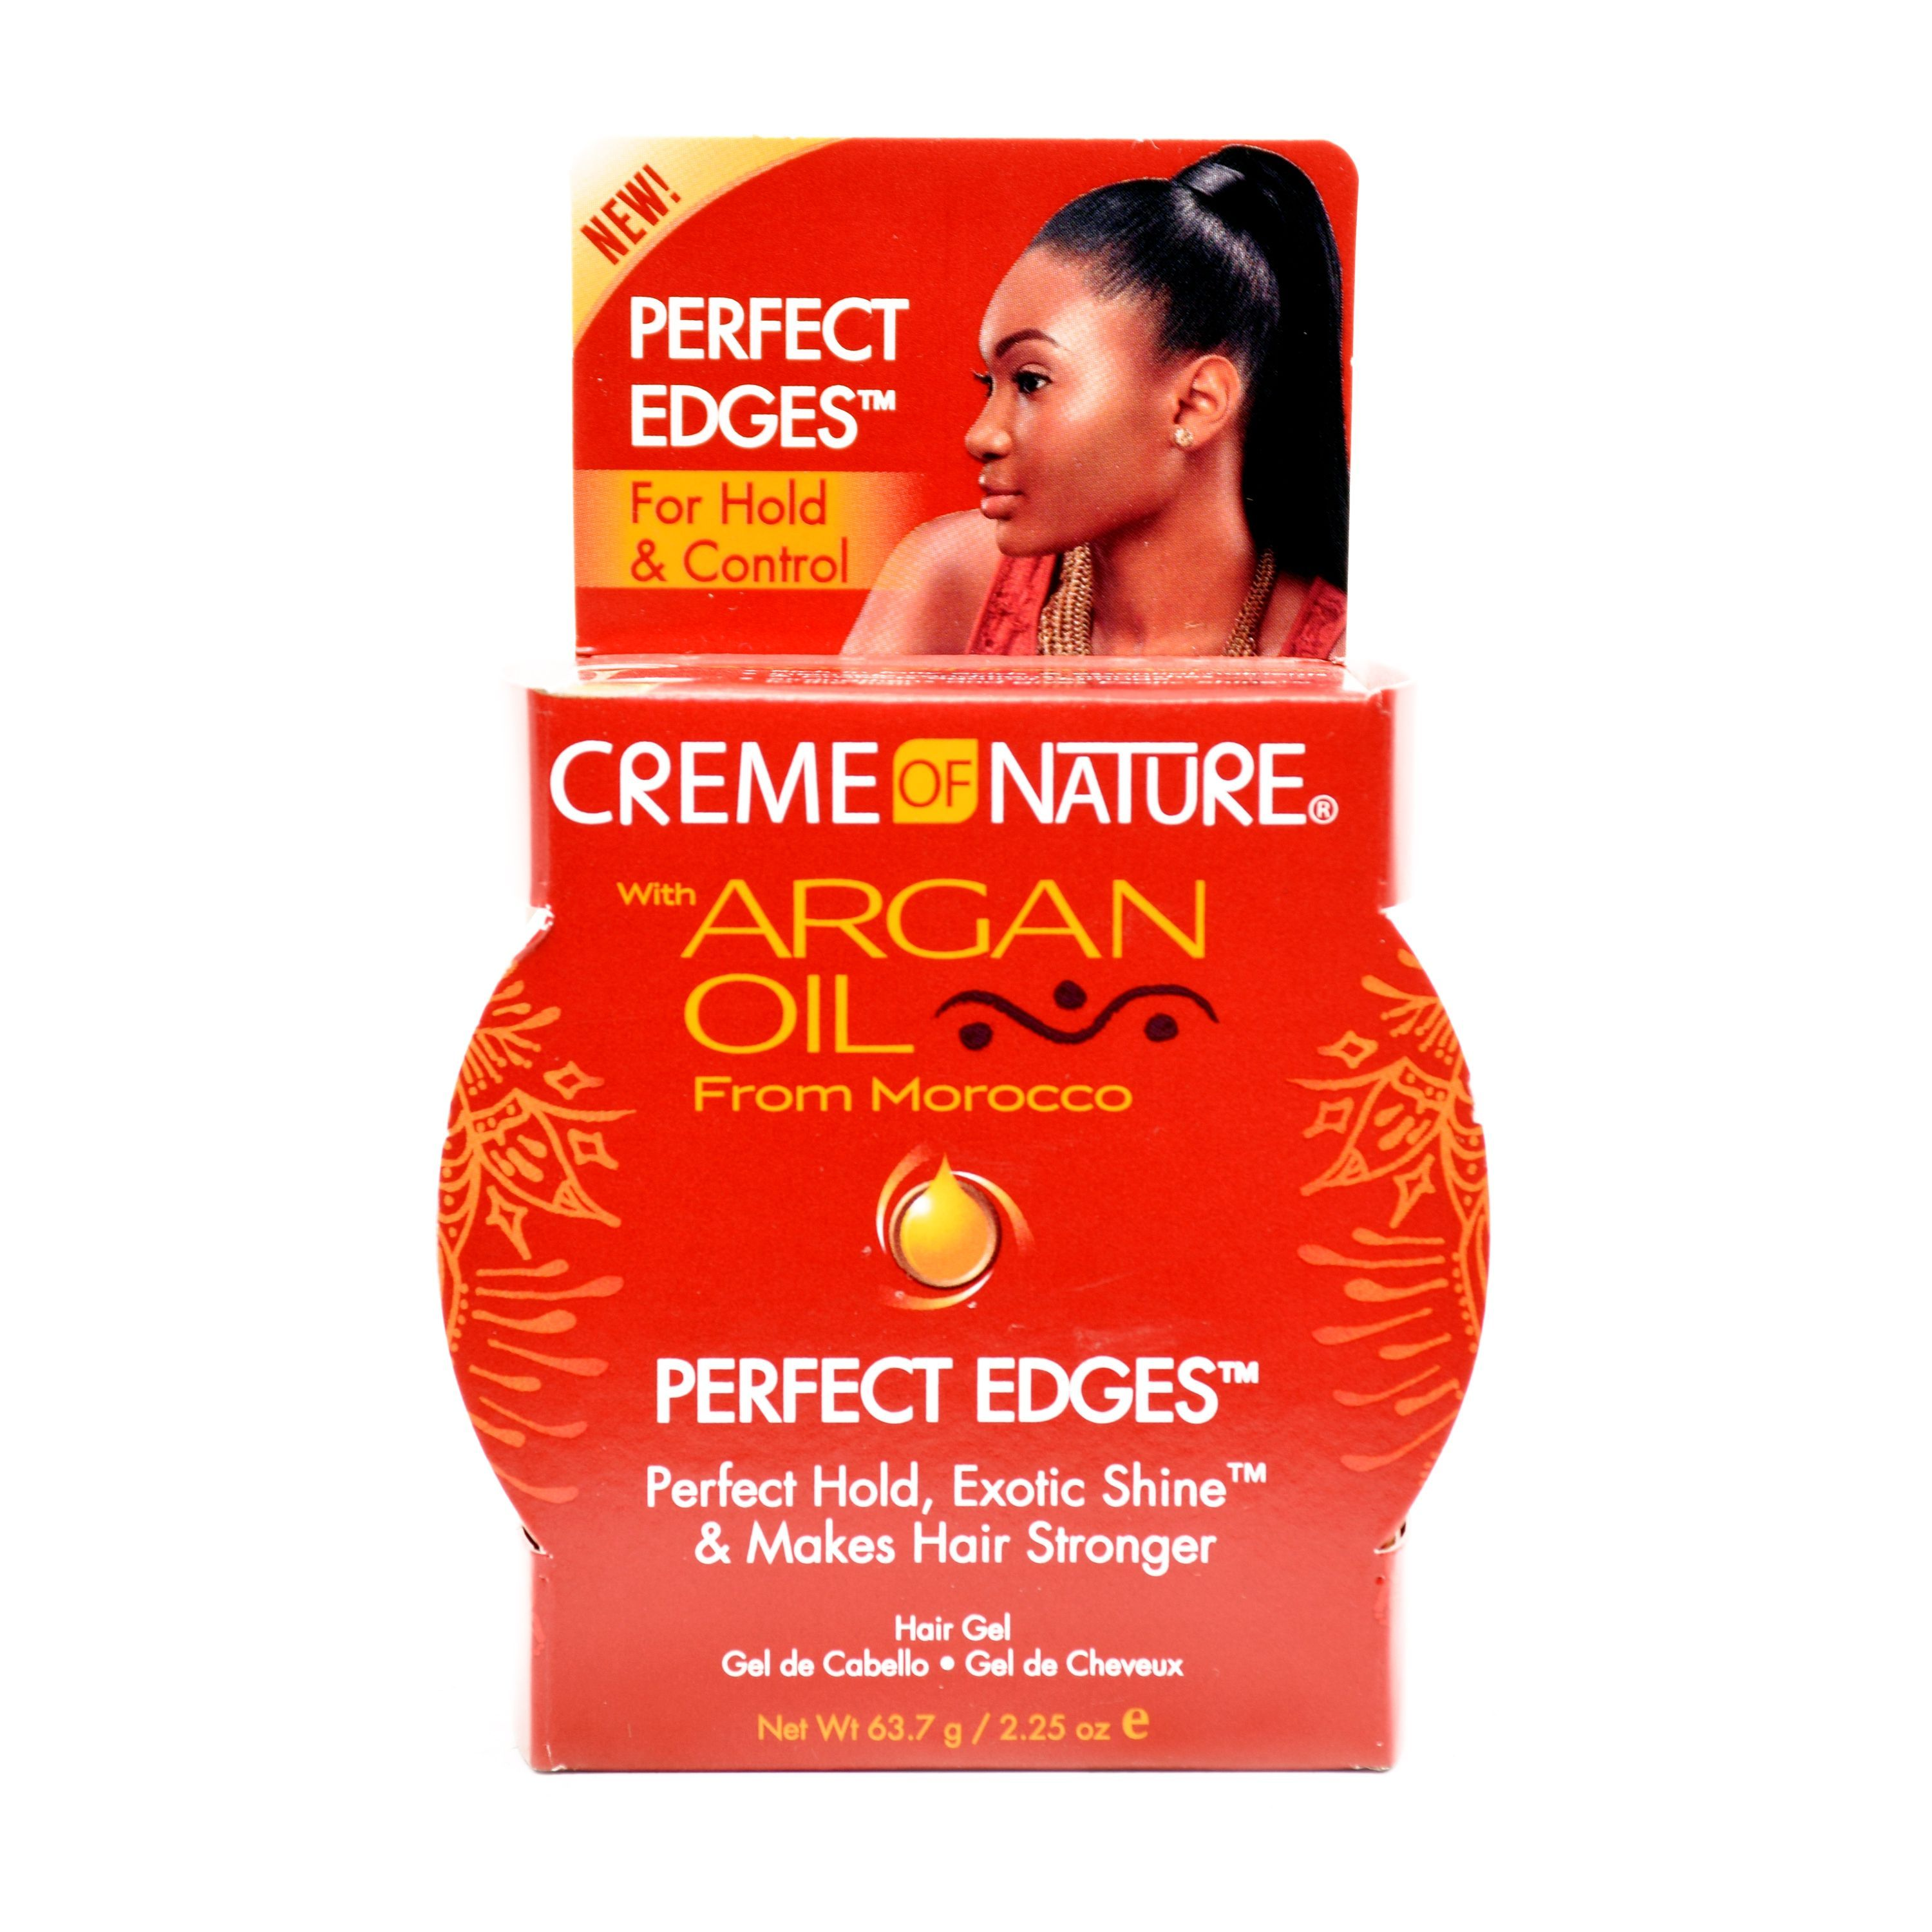 Creme Of Nature Argan Oil Perfect Edges For Hold & Control - 2.25oz